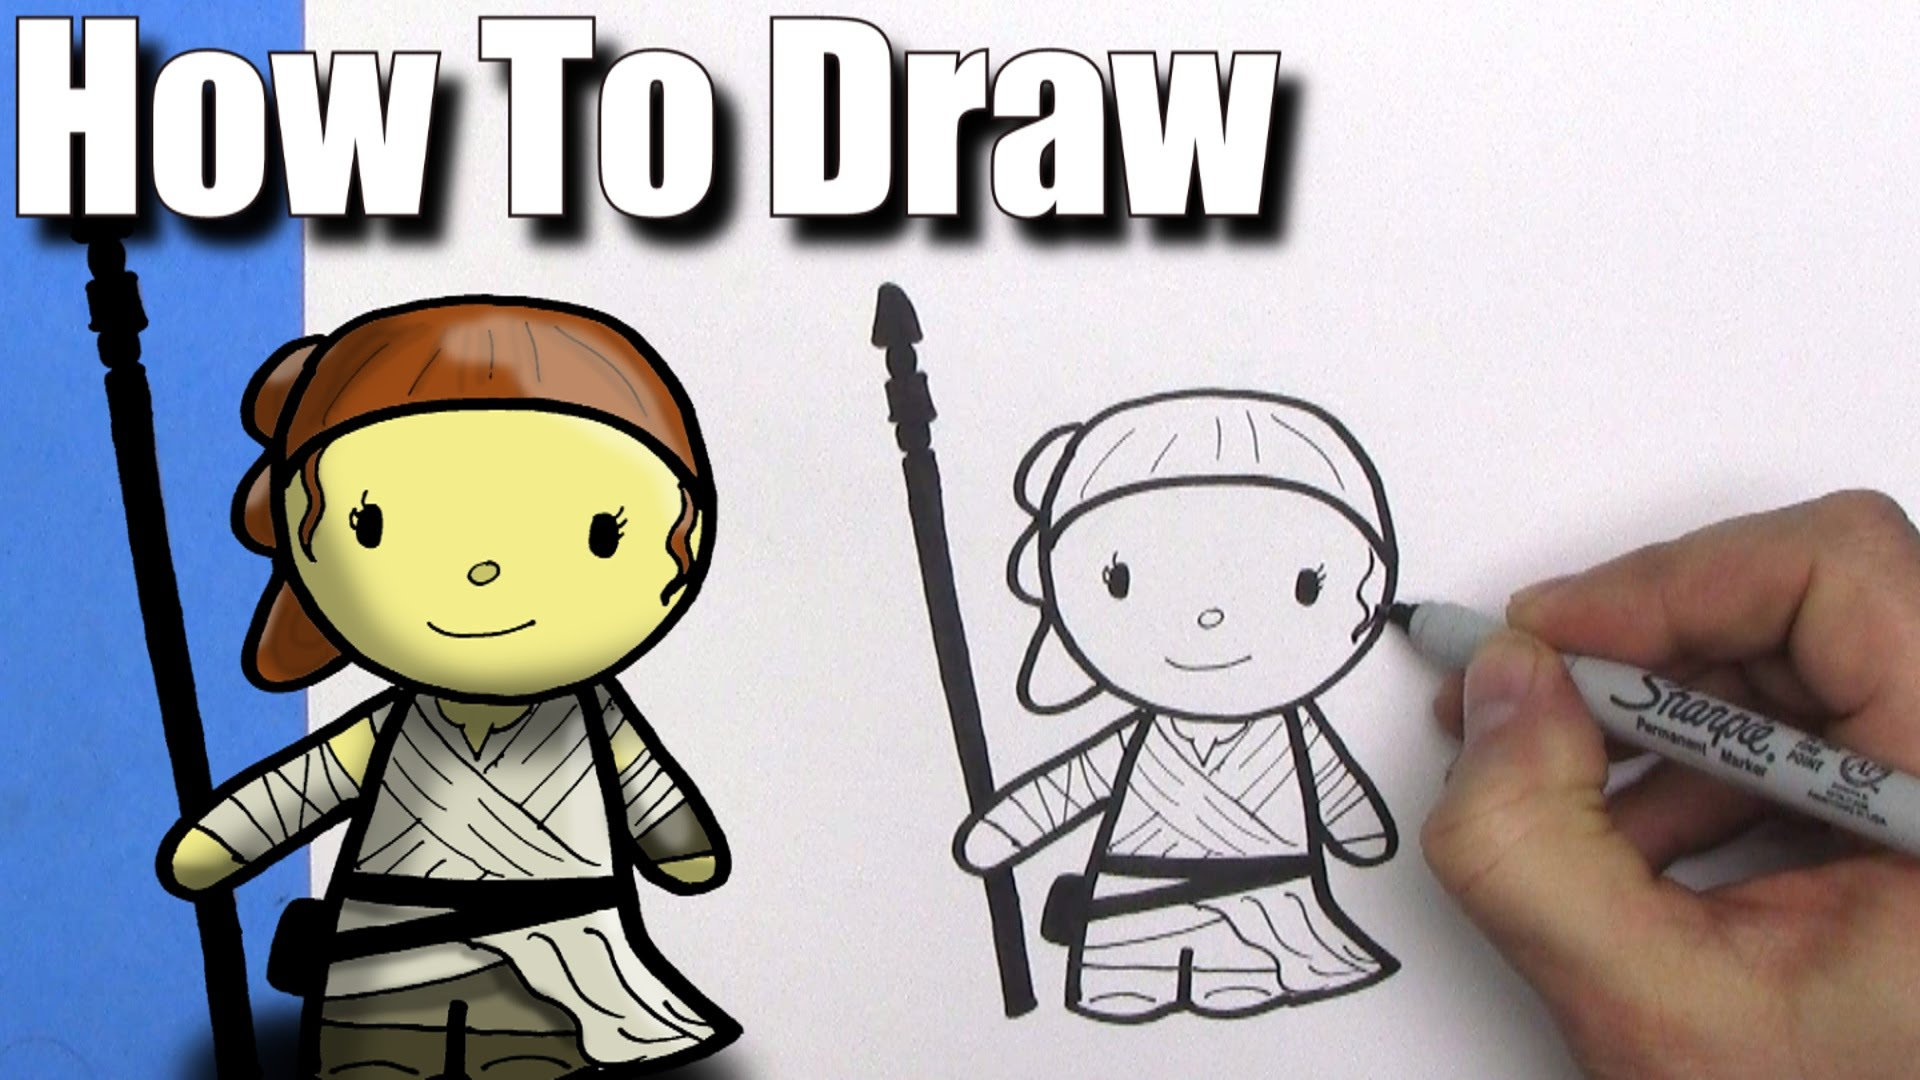 1920x1080 How To Draw A Cute Cartoon Rey From Star Wars